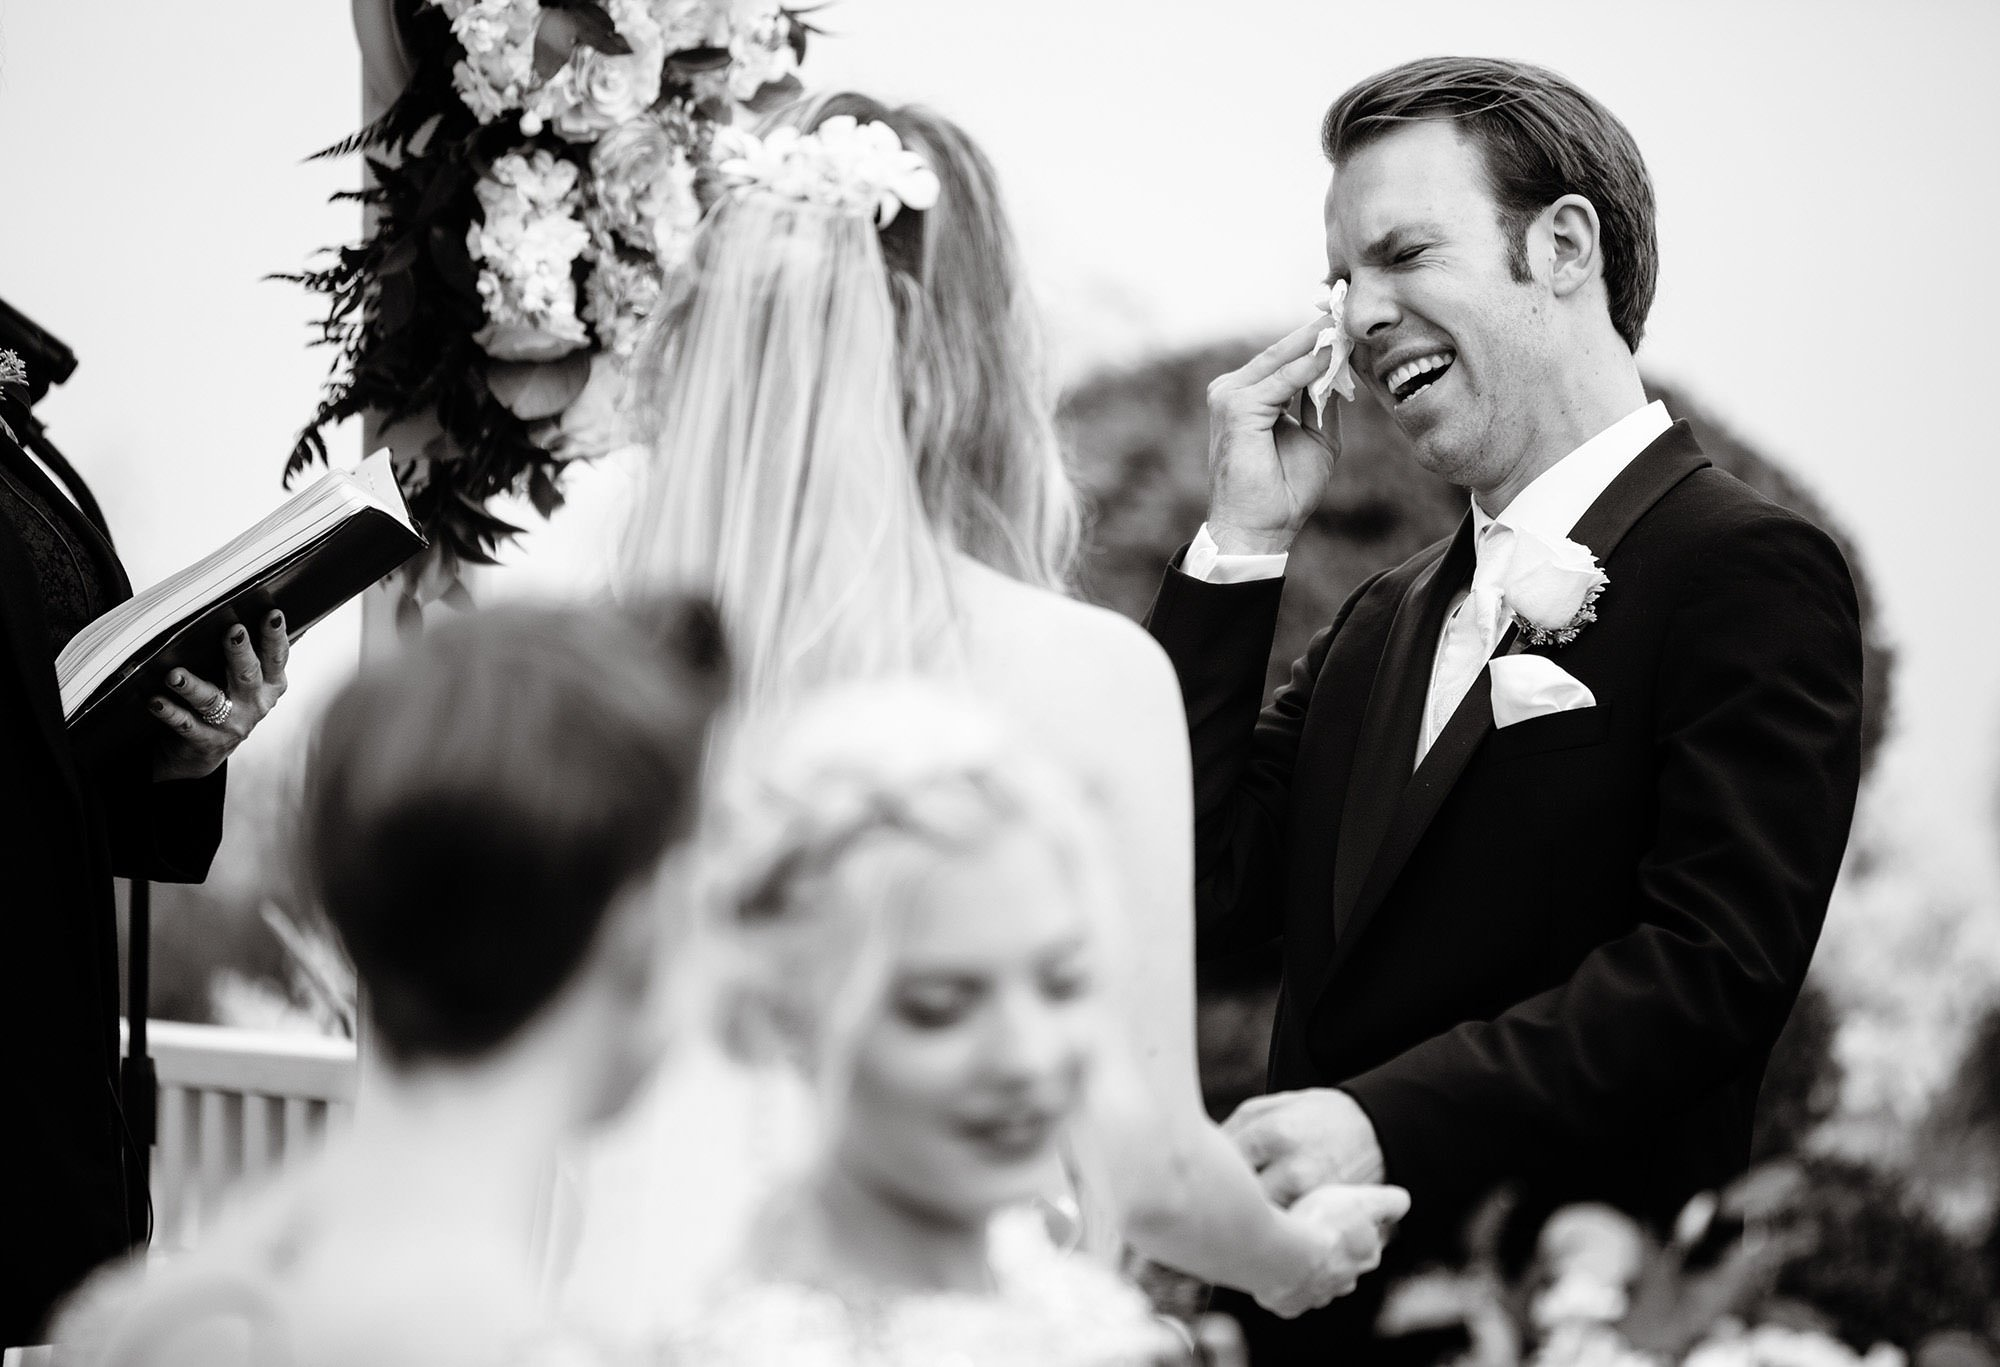 The groom sheds a tear during the White Cliffs Country Club Wedding ceremony.